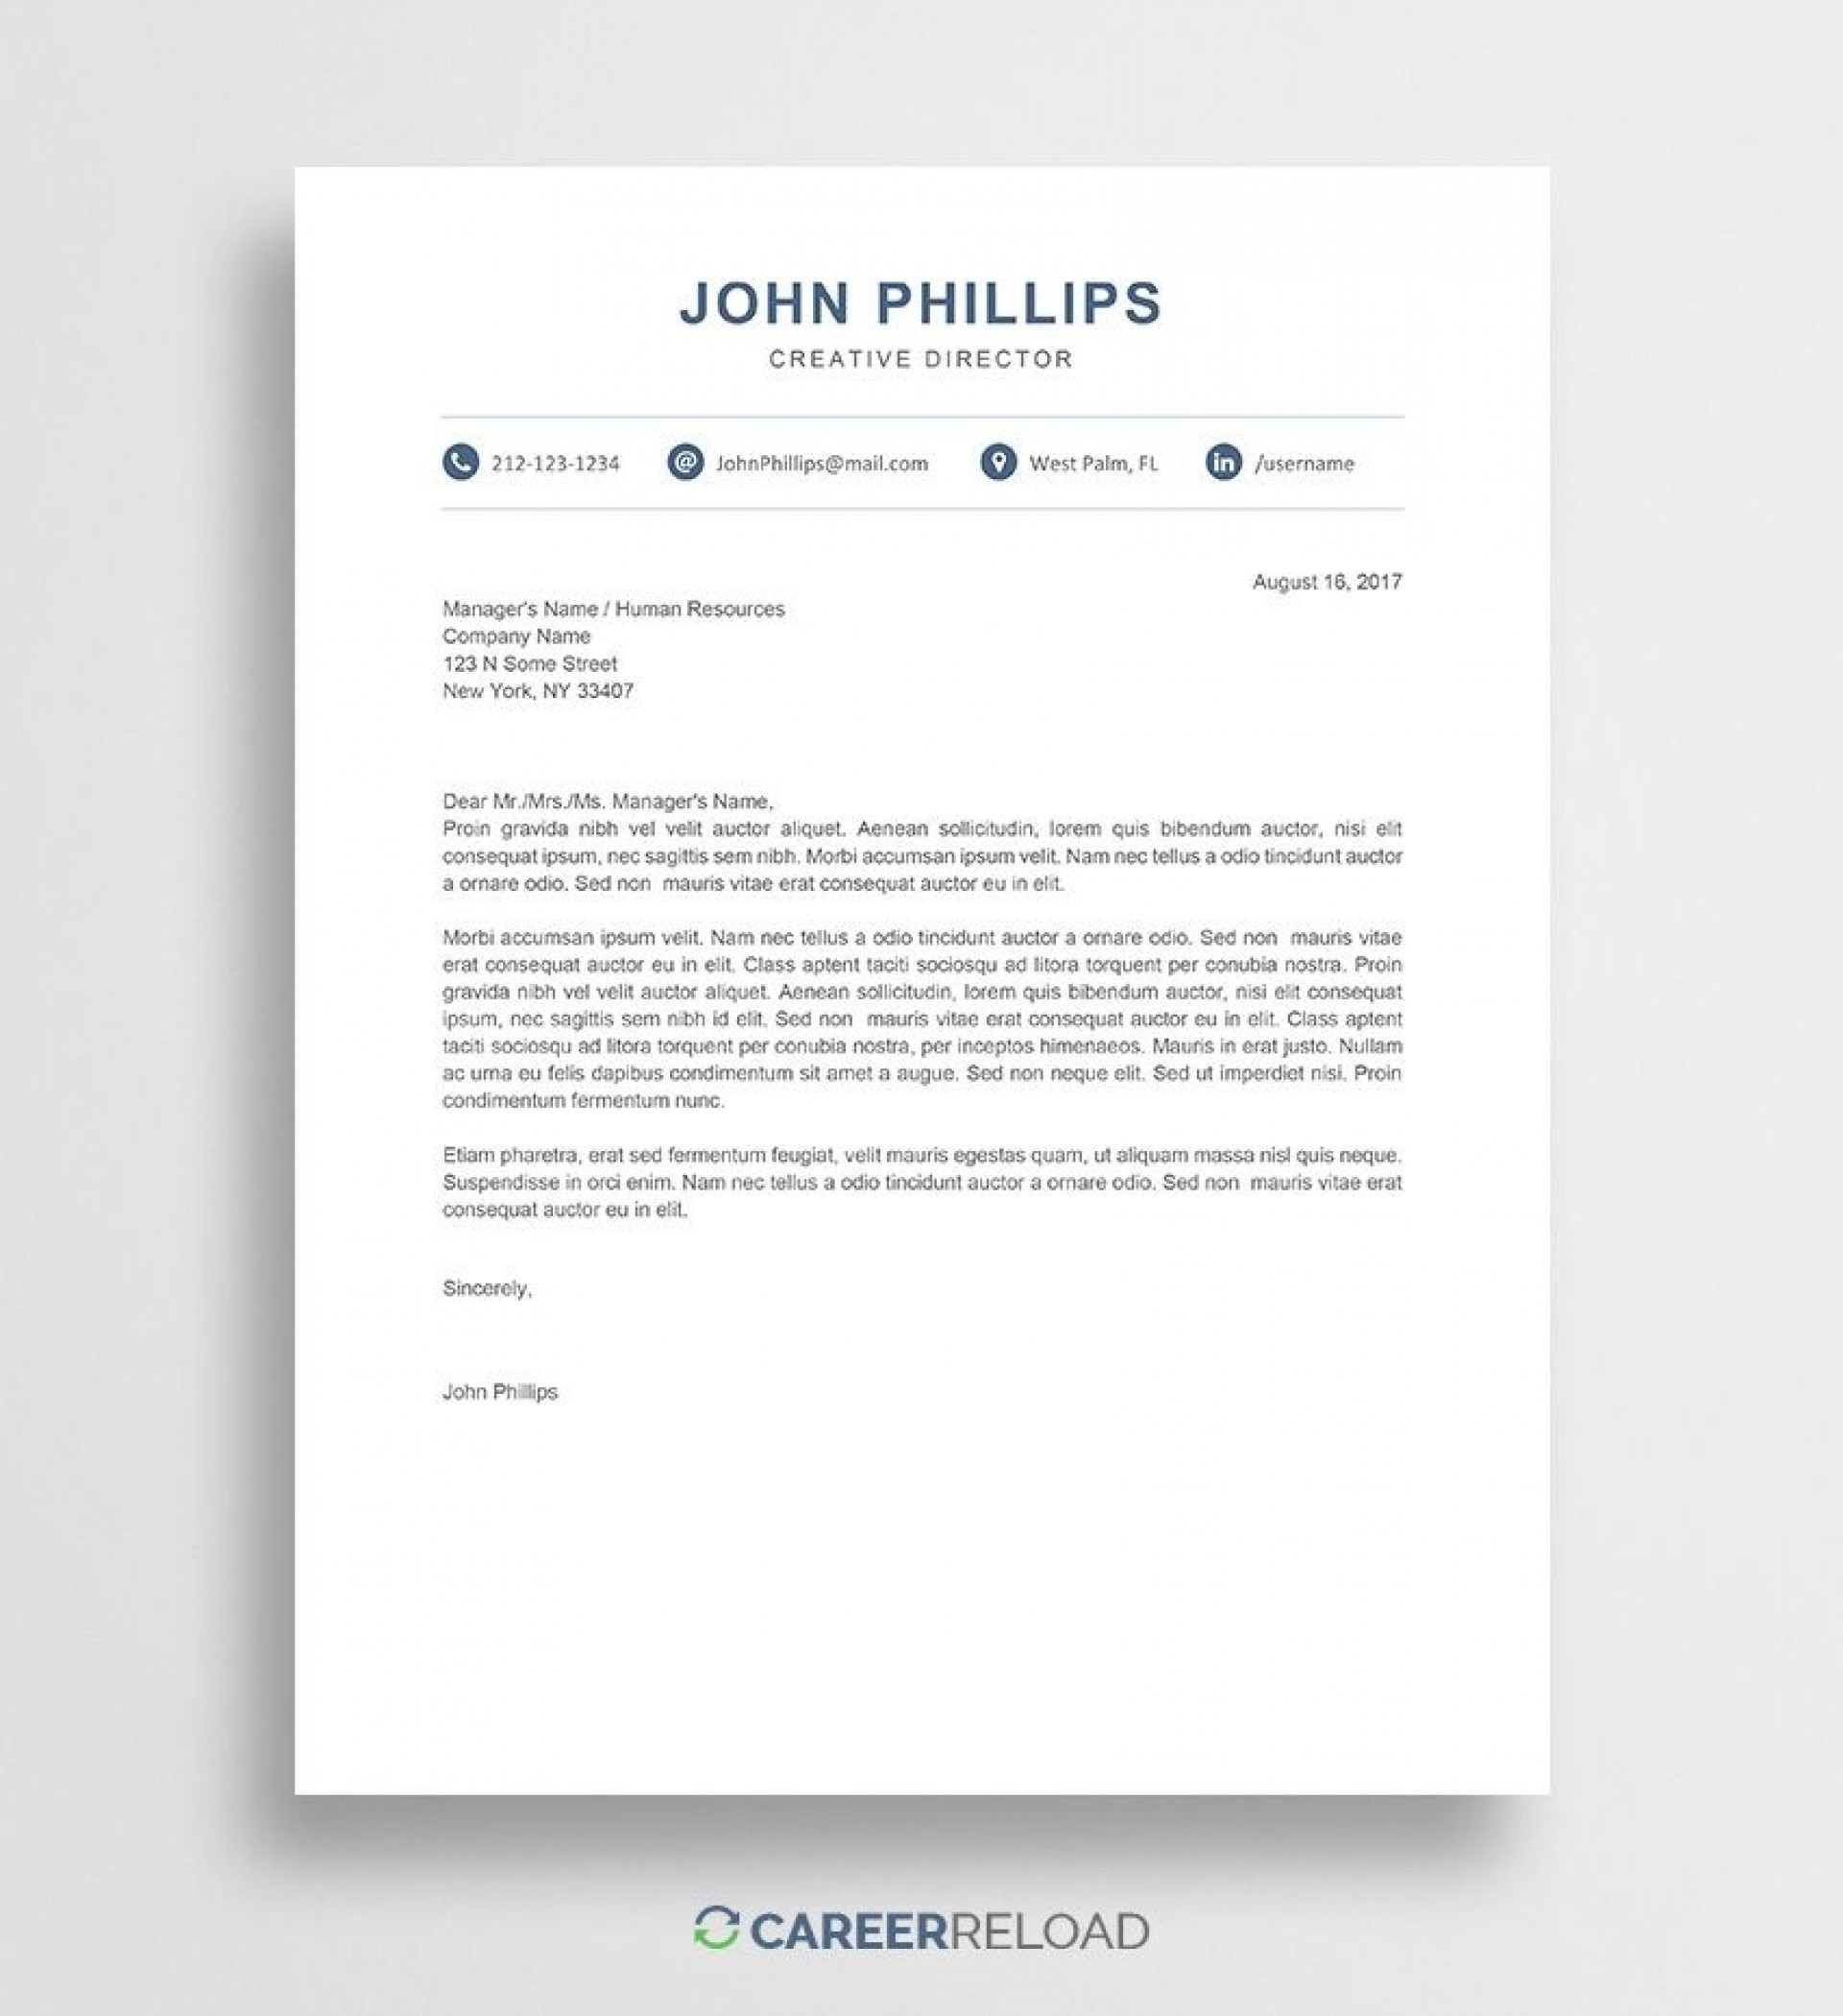 007 Breathtaking Free Printable Cover Letter Template Image  Templates Resume Fax Sheet Word1920